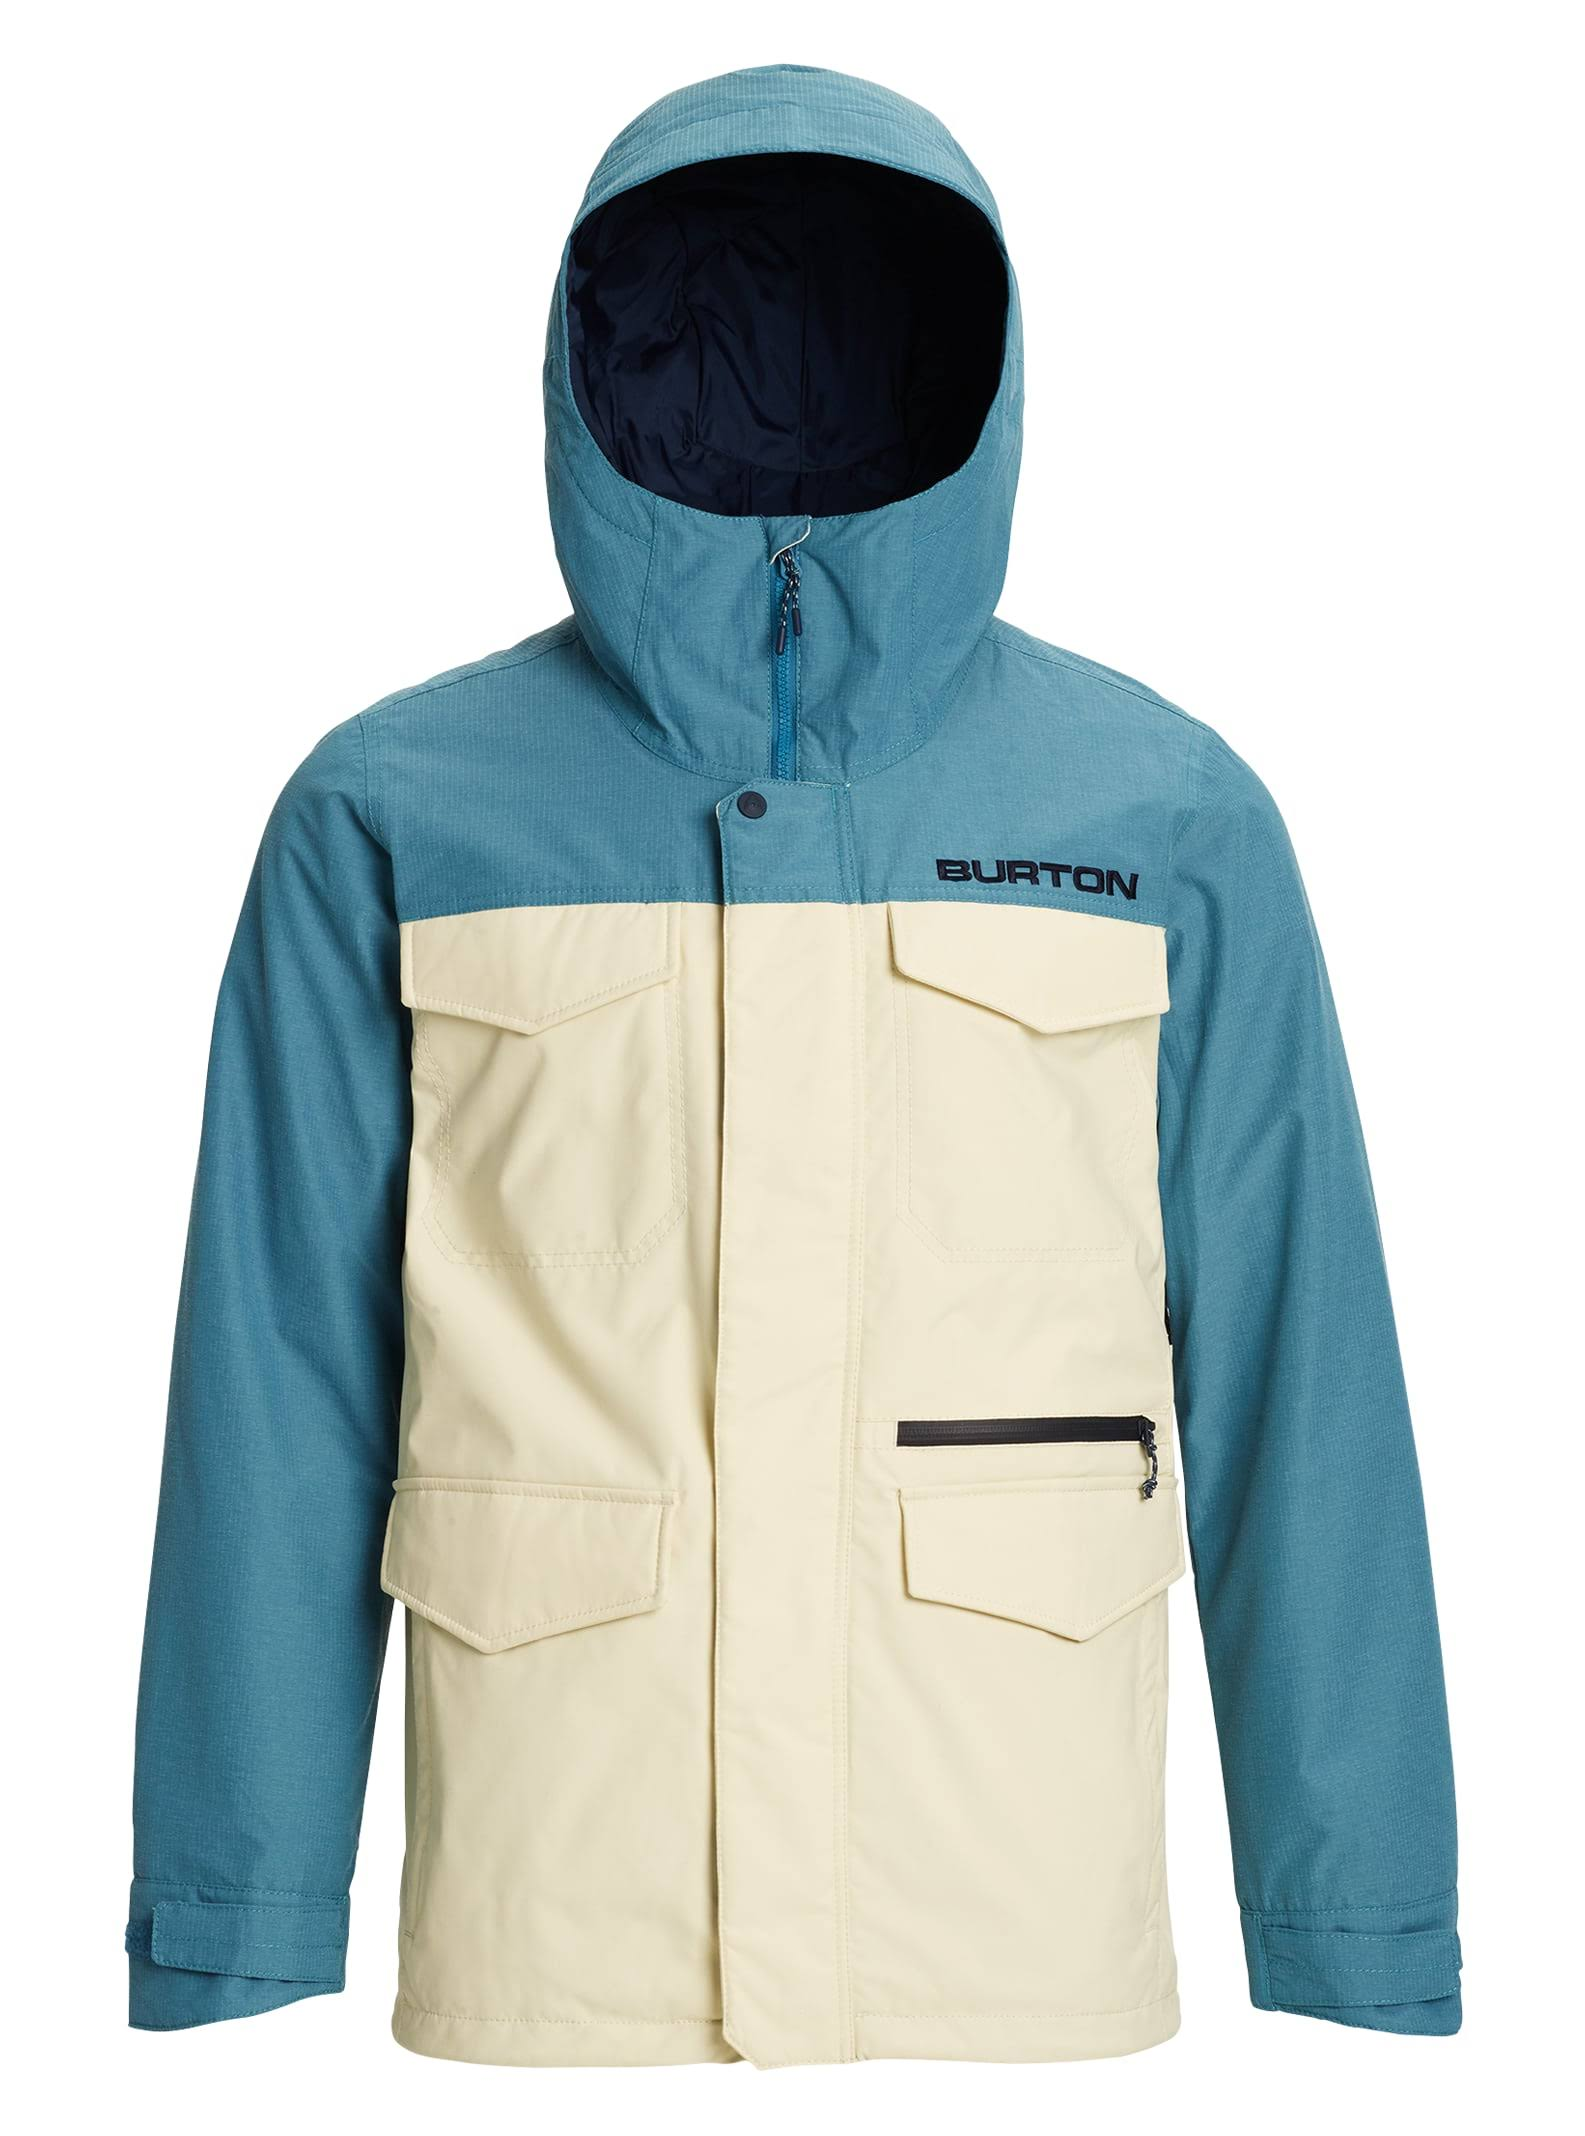 Burton Covert Jacket Men's- Almond Milk/ Storm Blue